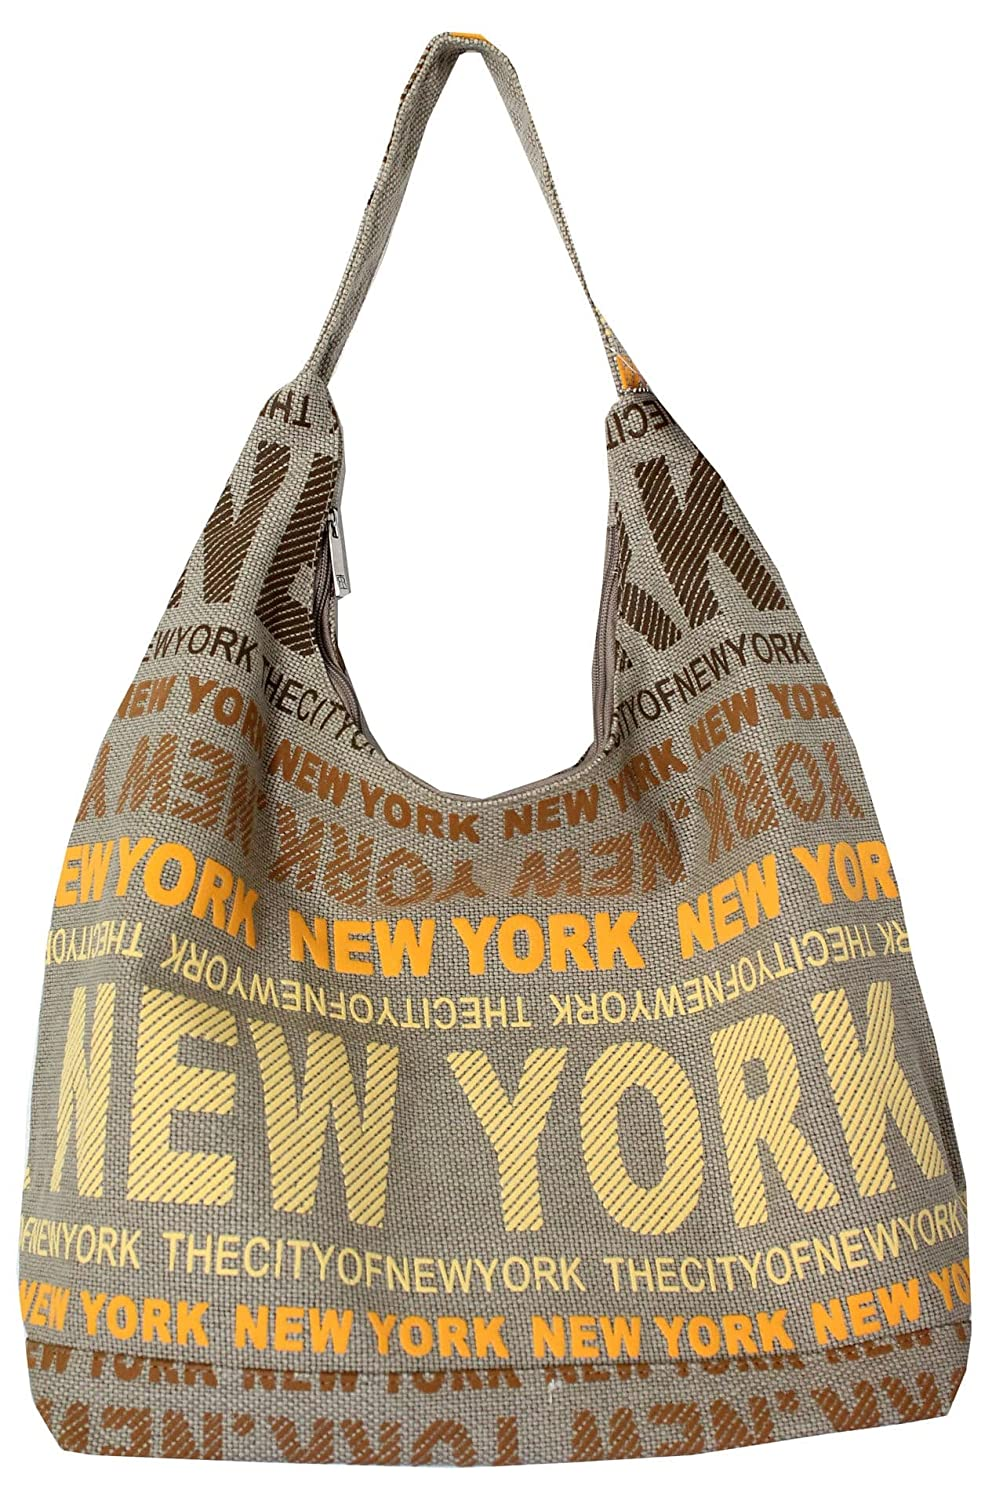 b5a26886bc1f8 Amazon.com  Robin Ruth New York City Cotton Fabric Hobo Shoulder Bag Blue   Shoes